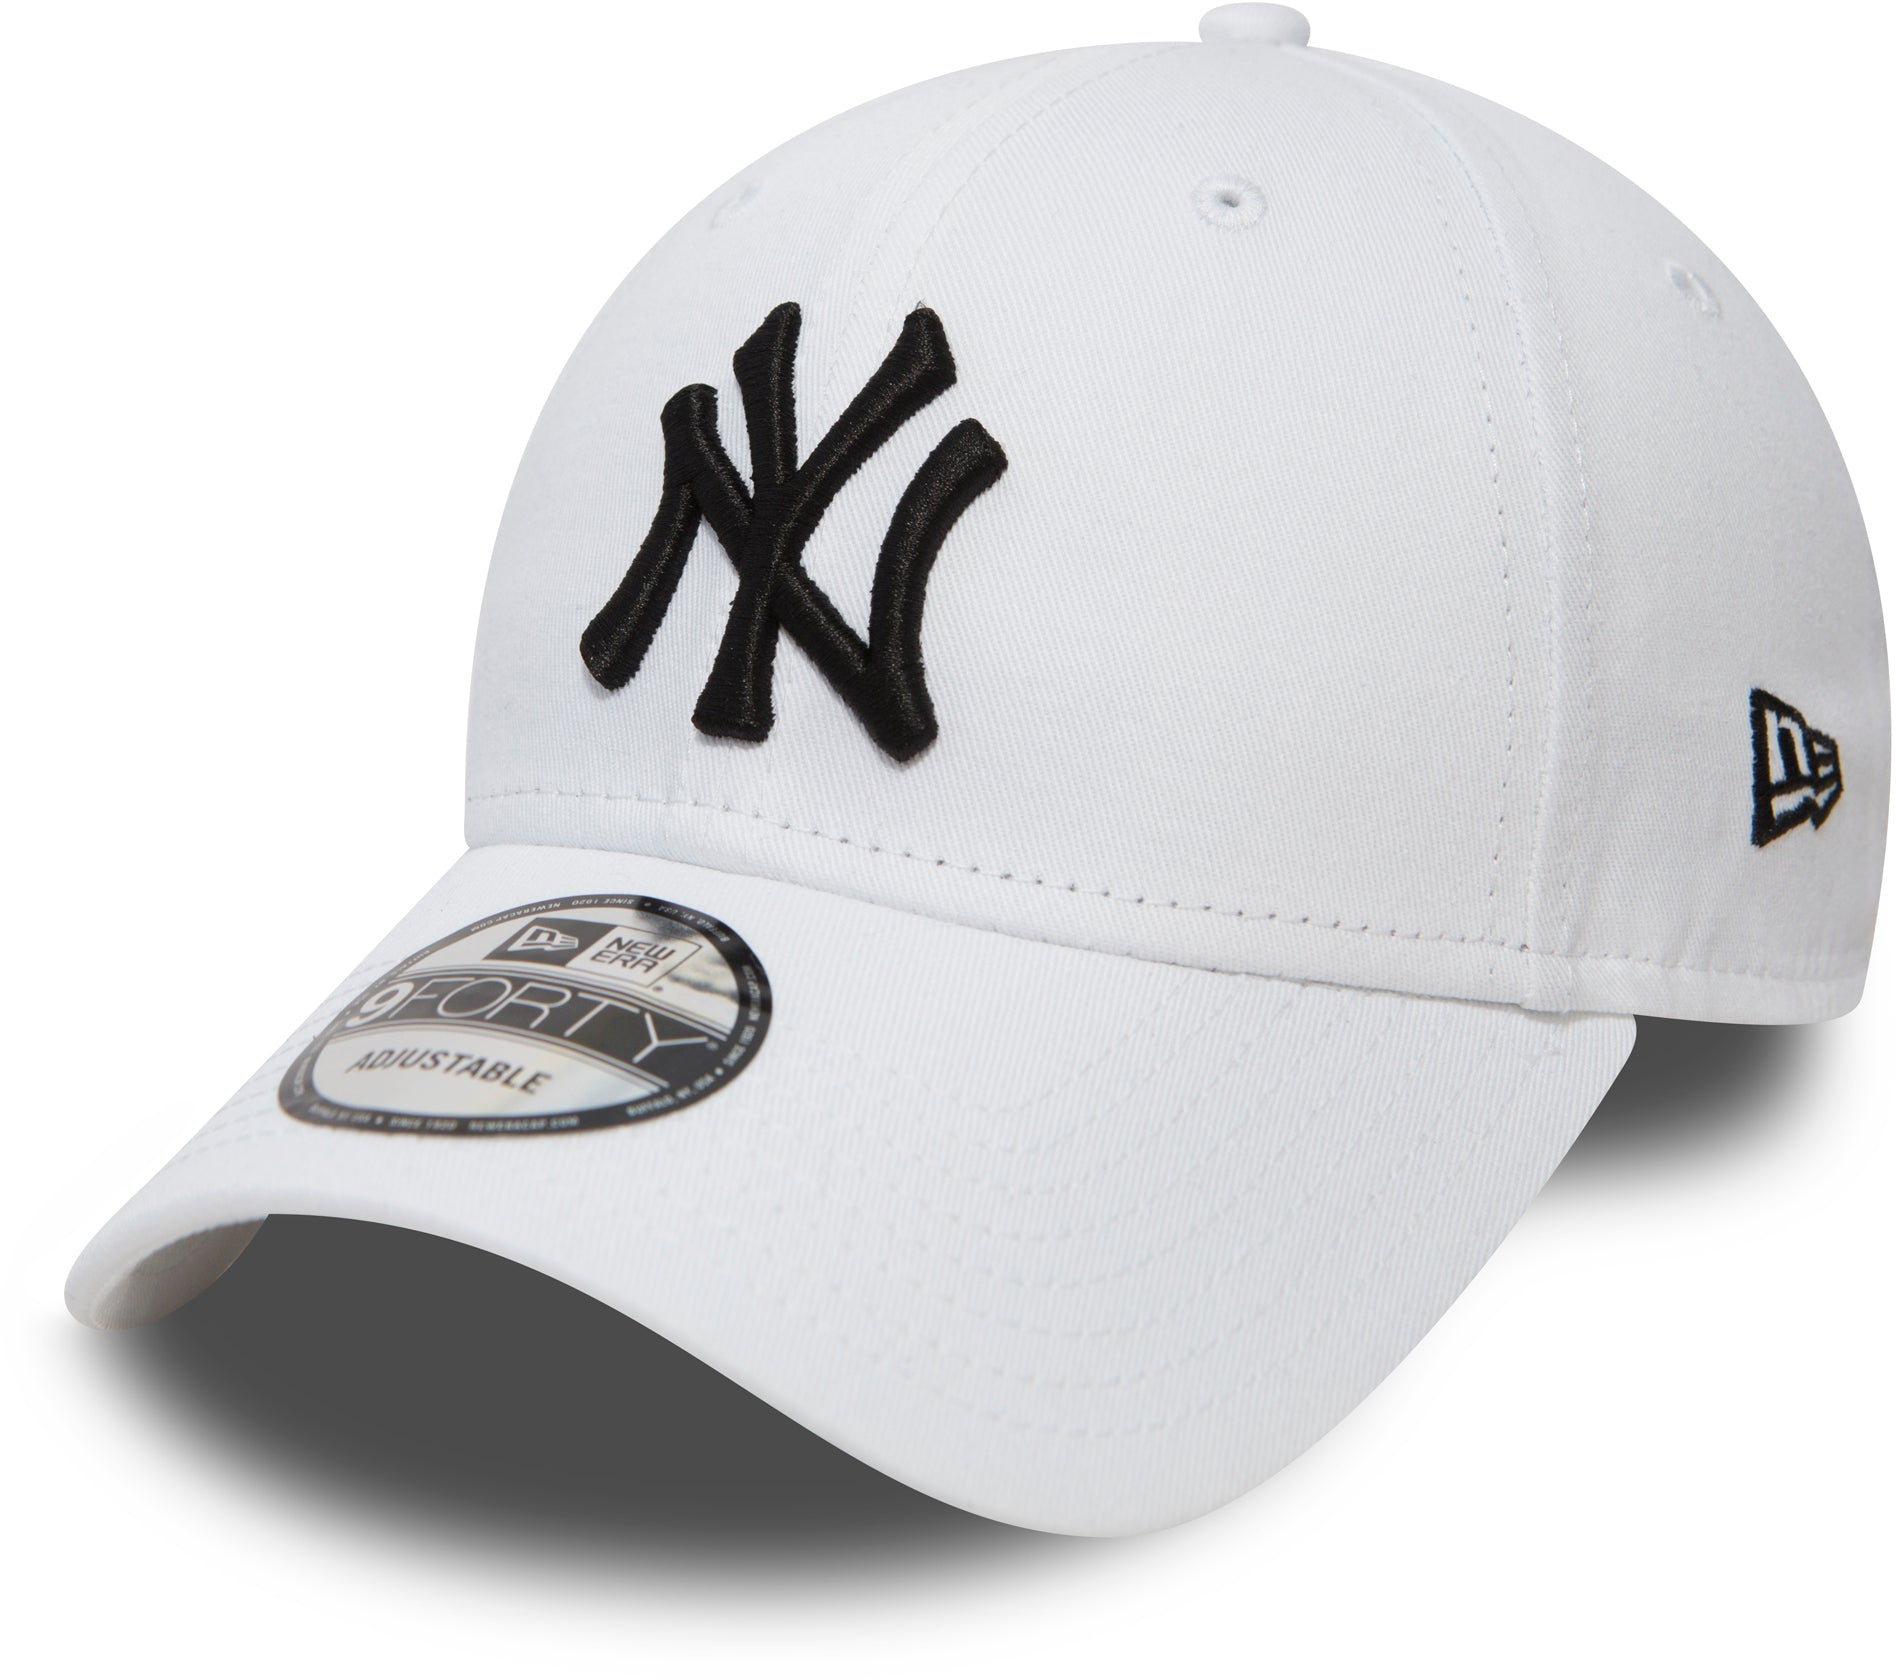 Embroidered Adjustable Baseball Cap New Season Color White Manchester United